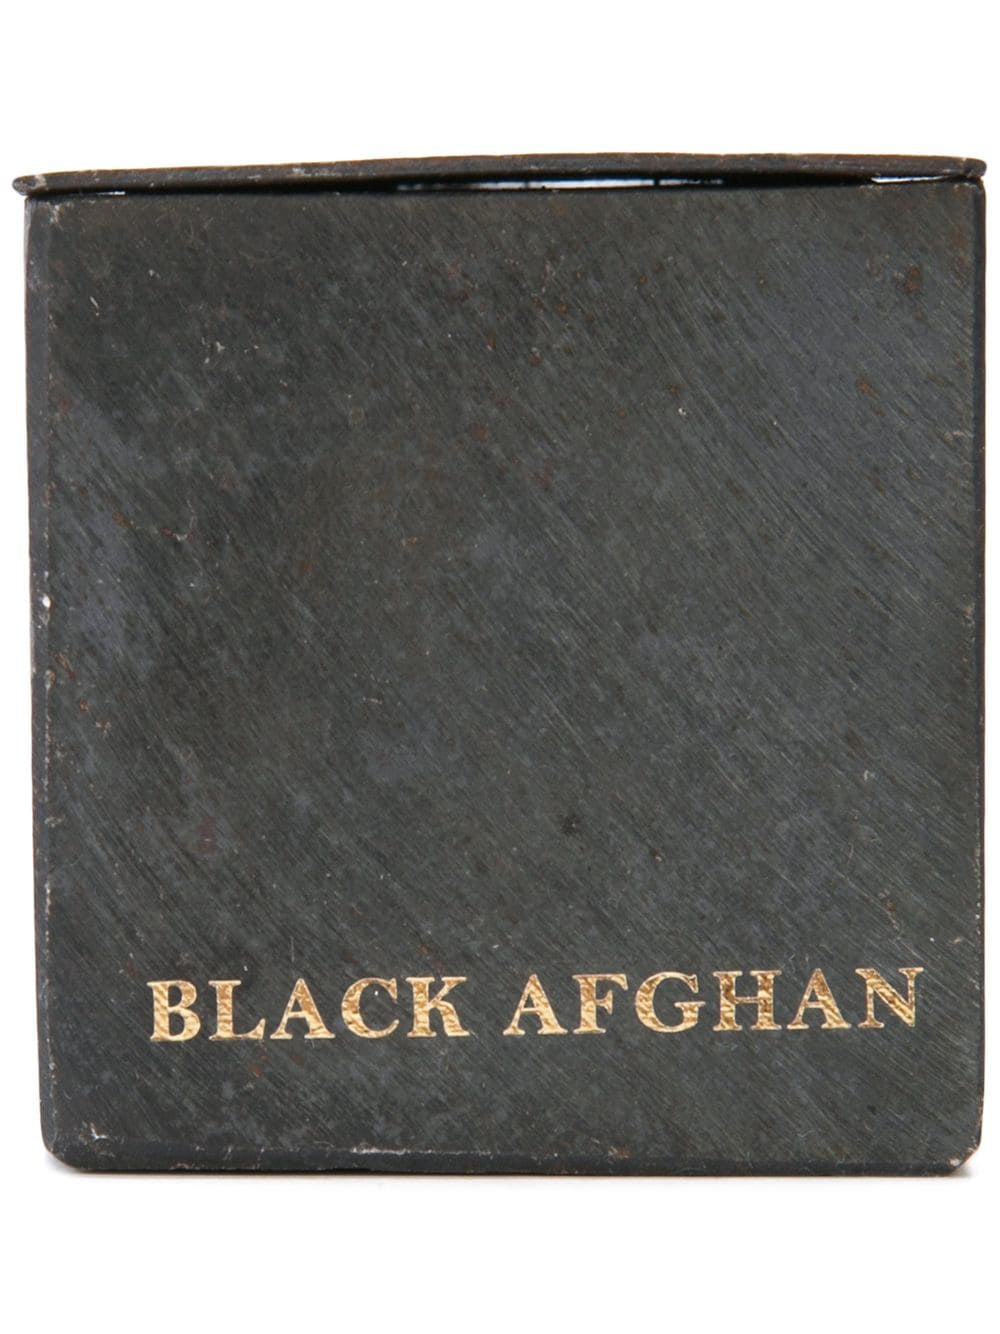 MINI BLOC BLACK AFGHAN